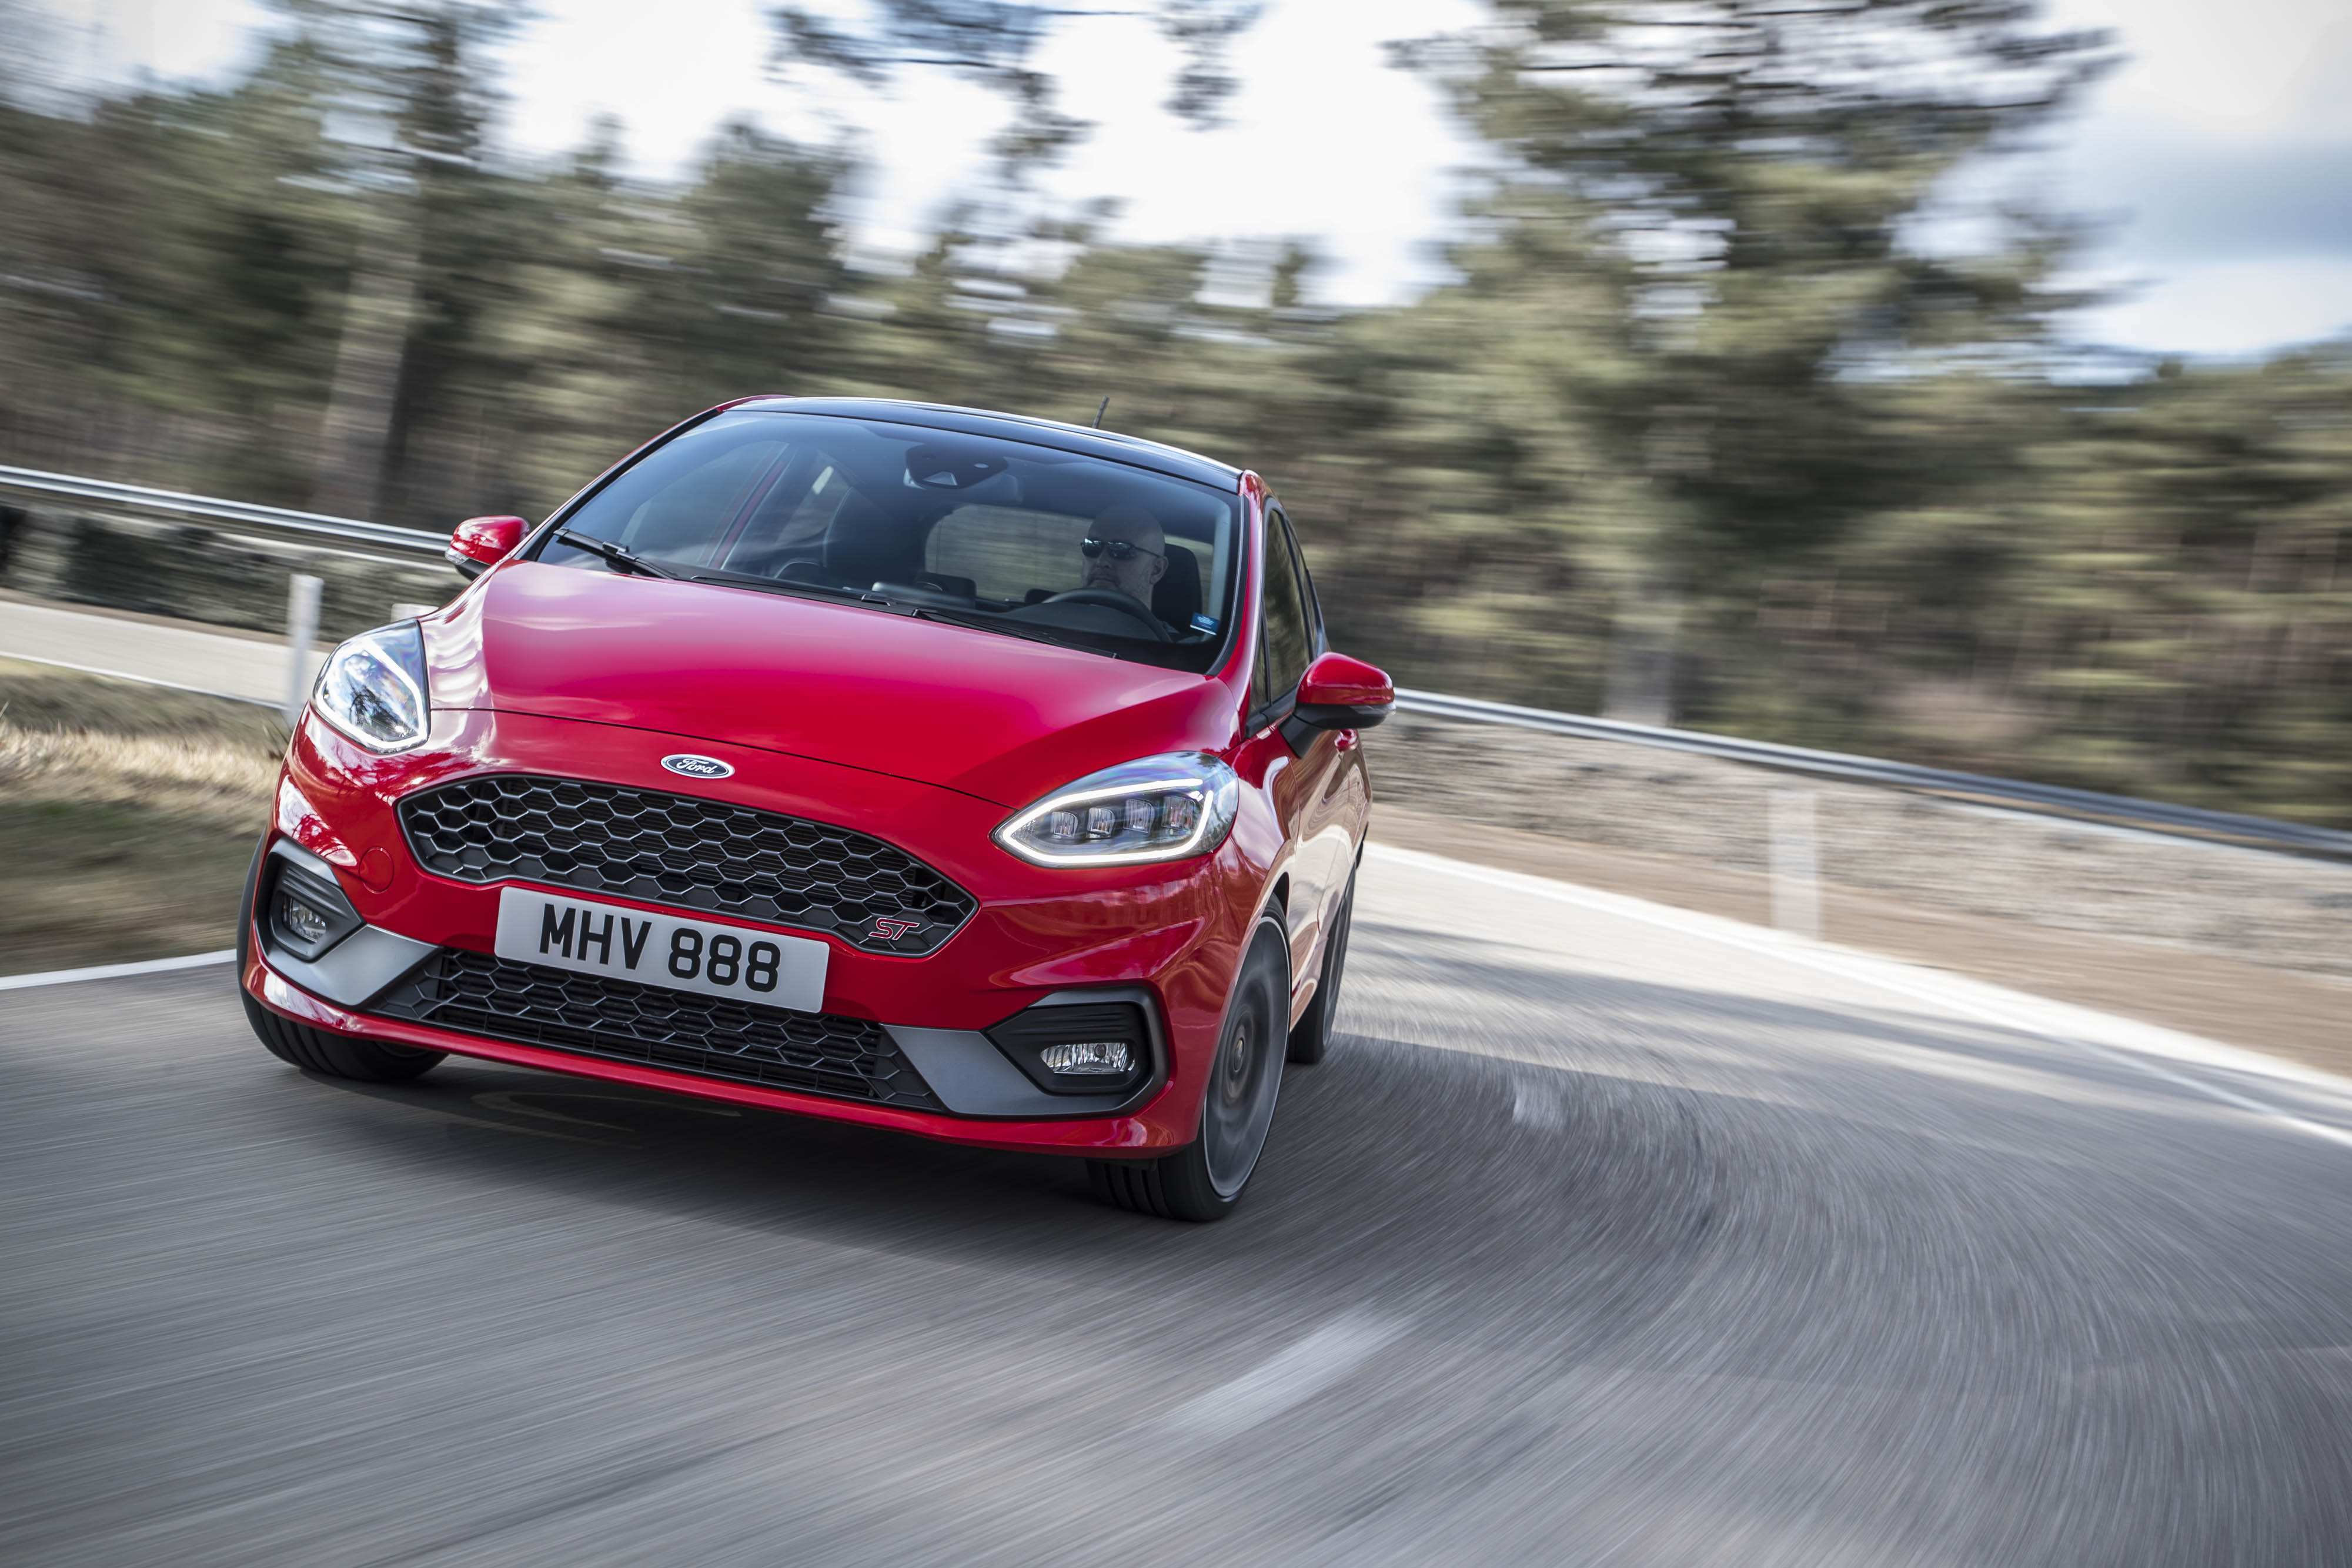 81 Best Review 2020 Ford Fiesta Prices for 2020 Ford Fiesta